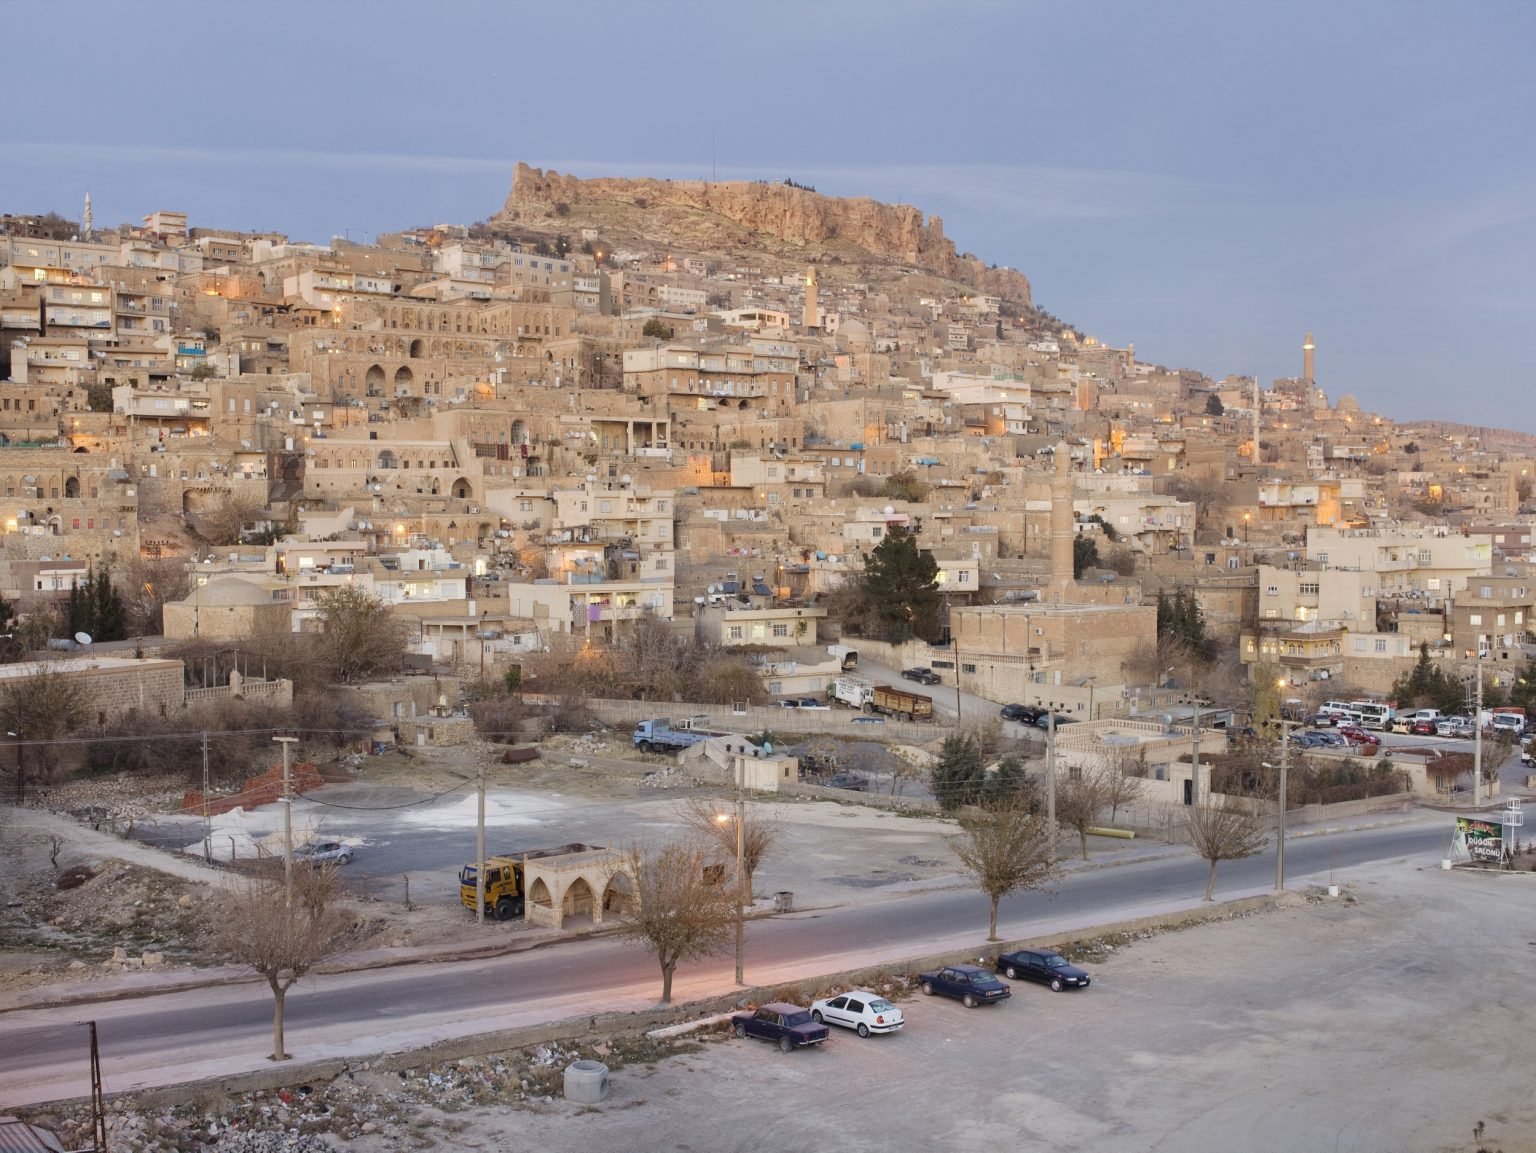 View of Mardin, an old city overlooking the plains of Mesopotamia close to the Syrian border. There are some 600 Christians living in Mardin and 11 churches.